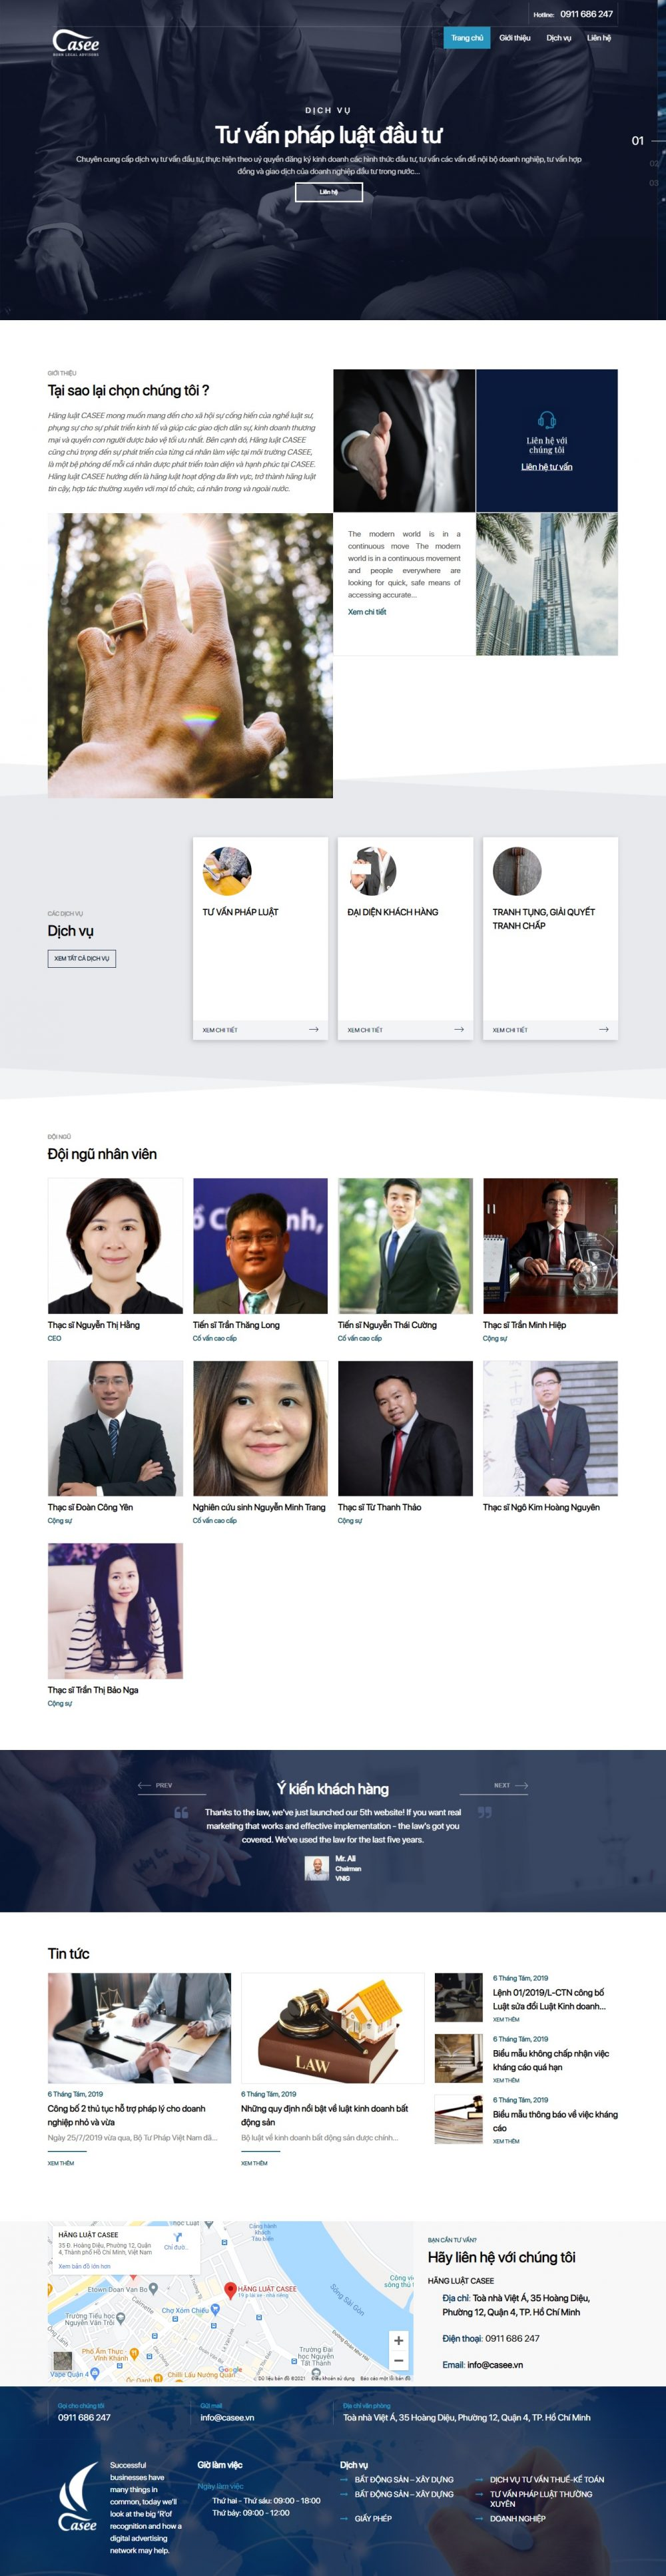 Casee – Công ty luật